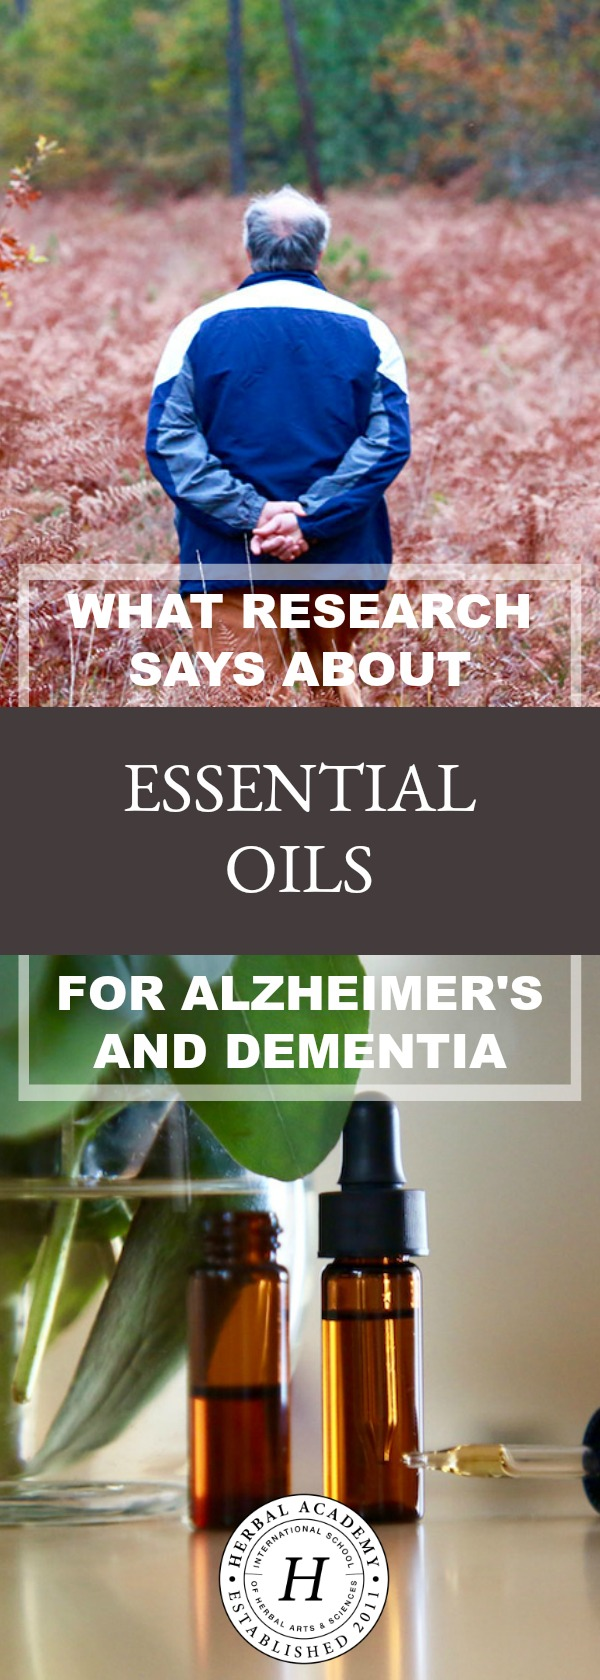 What Research Says About Essential Oils For Alzheimer's and Dementia | Herbal Academy | Do you have a loved one that suffers from a neurodegenerative disease? Learn what research says about essential oils and Alzheimer's and dementia.